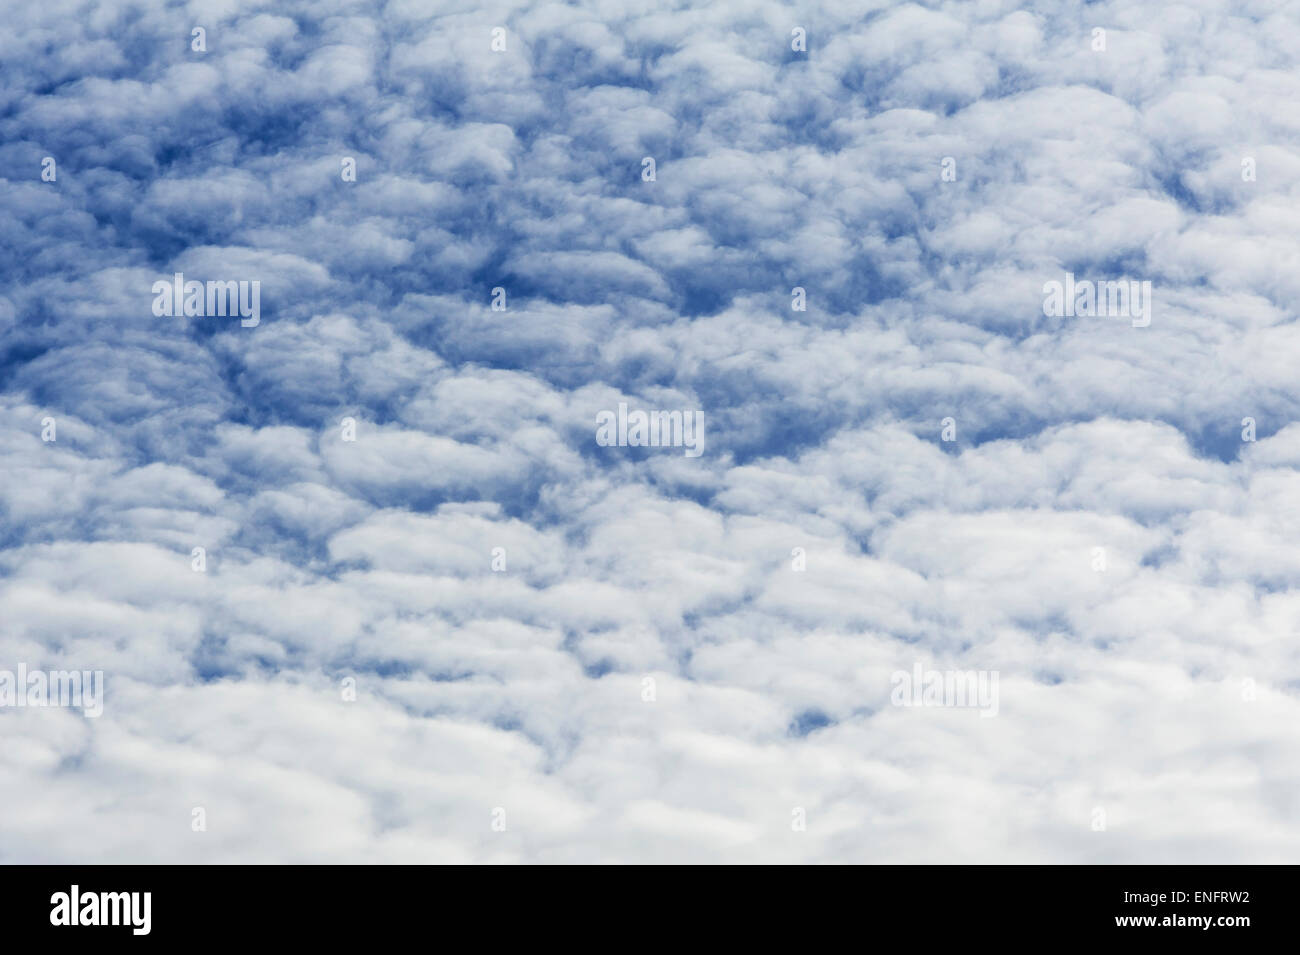 Large fluffy clouds, altocumulus - Stock Image